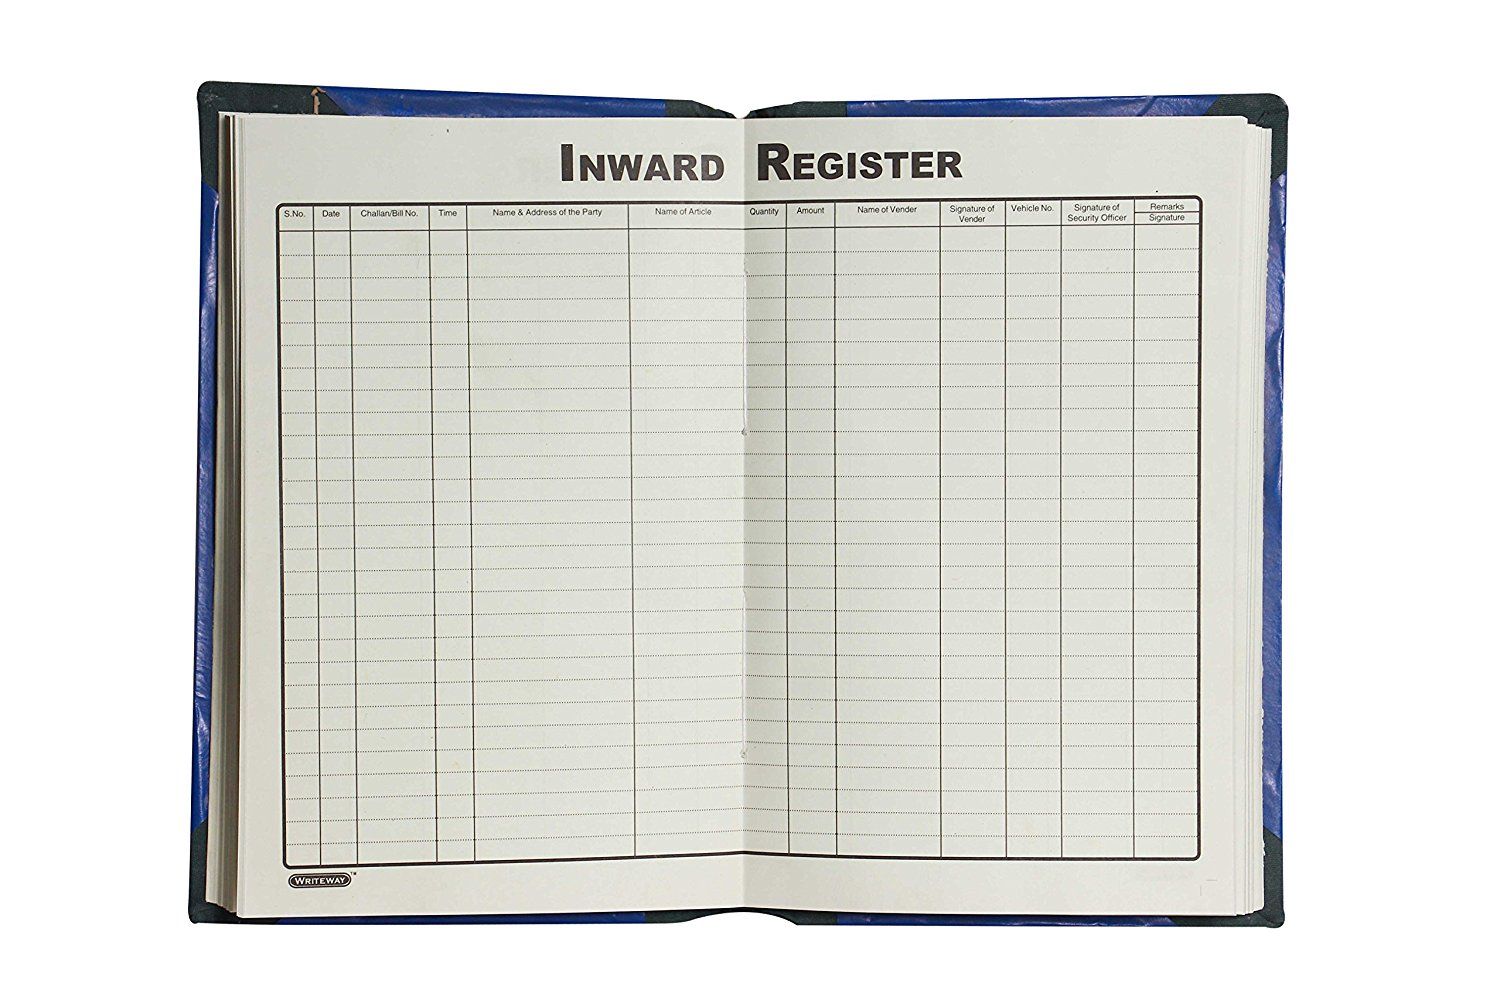 Inward Register, Rexine Binding, 384 Pages 8 Qr, Pack of 2